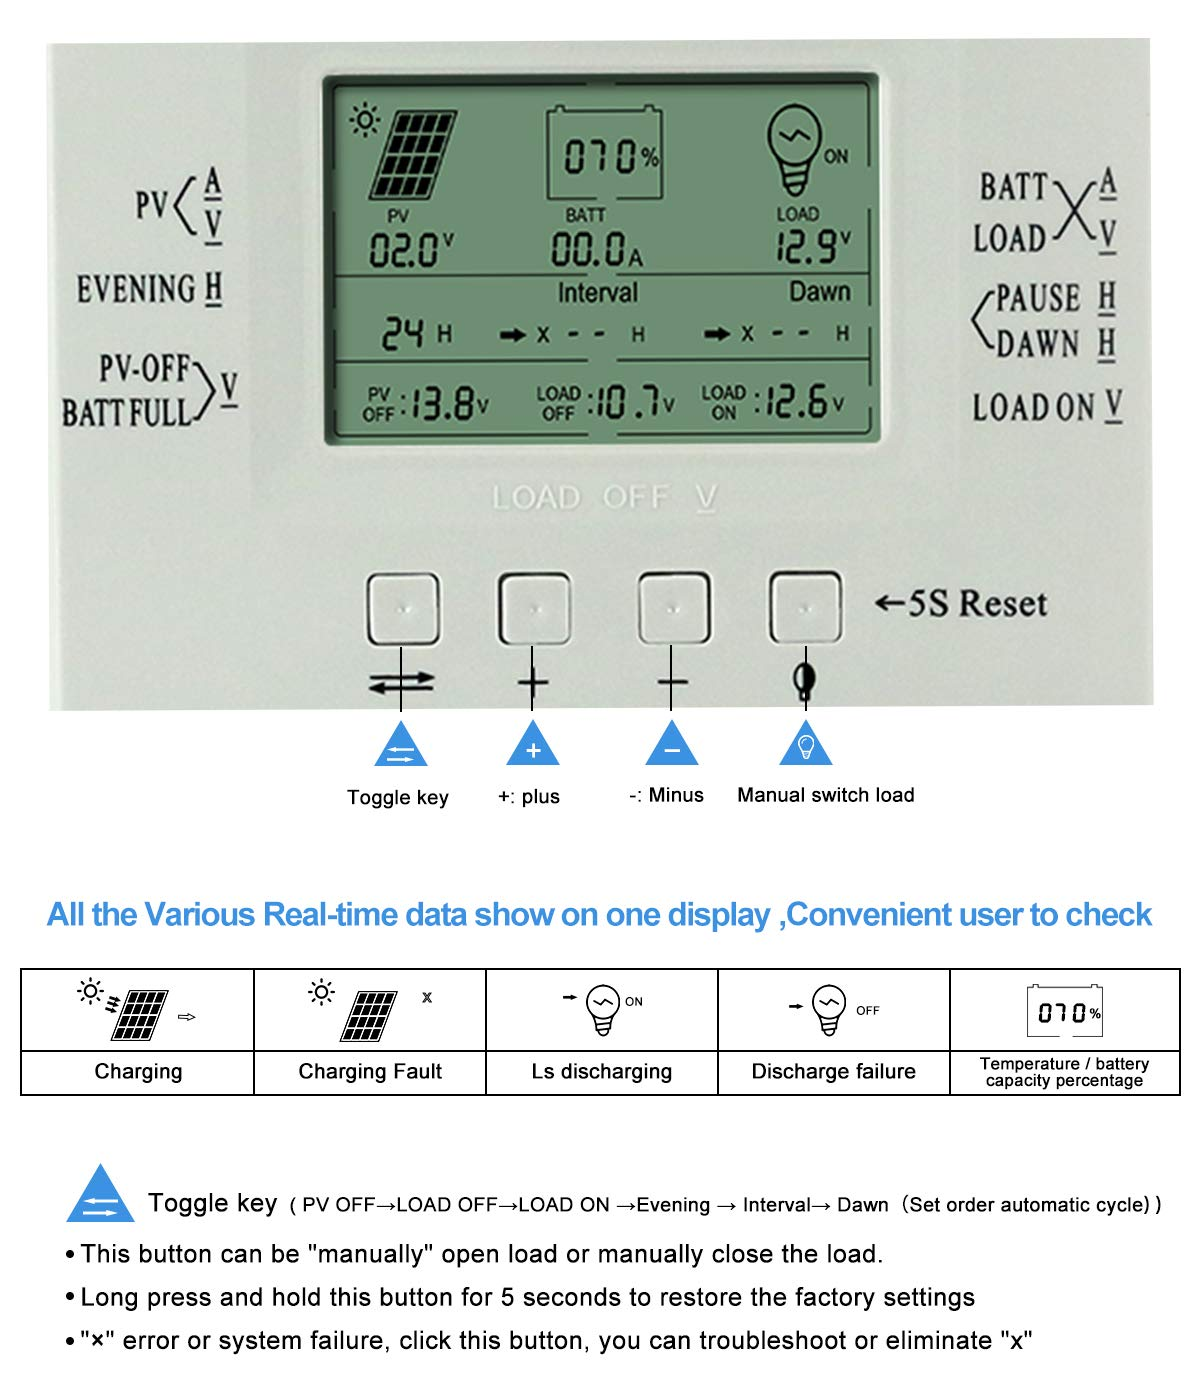 MPPT 60 amp Solar Charge Controller 12V/24V Auto, 60A Solar Panel Charge Regulator Max 100V, 780W/1560W Input, for Lead-Acid Battery Load Timer Setting by PowMr (Image #2)